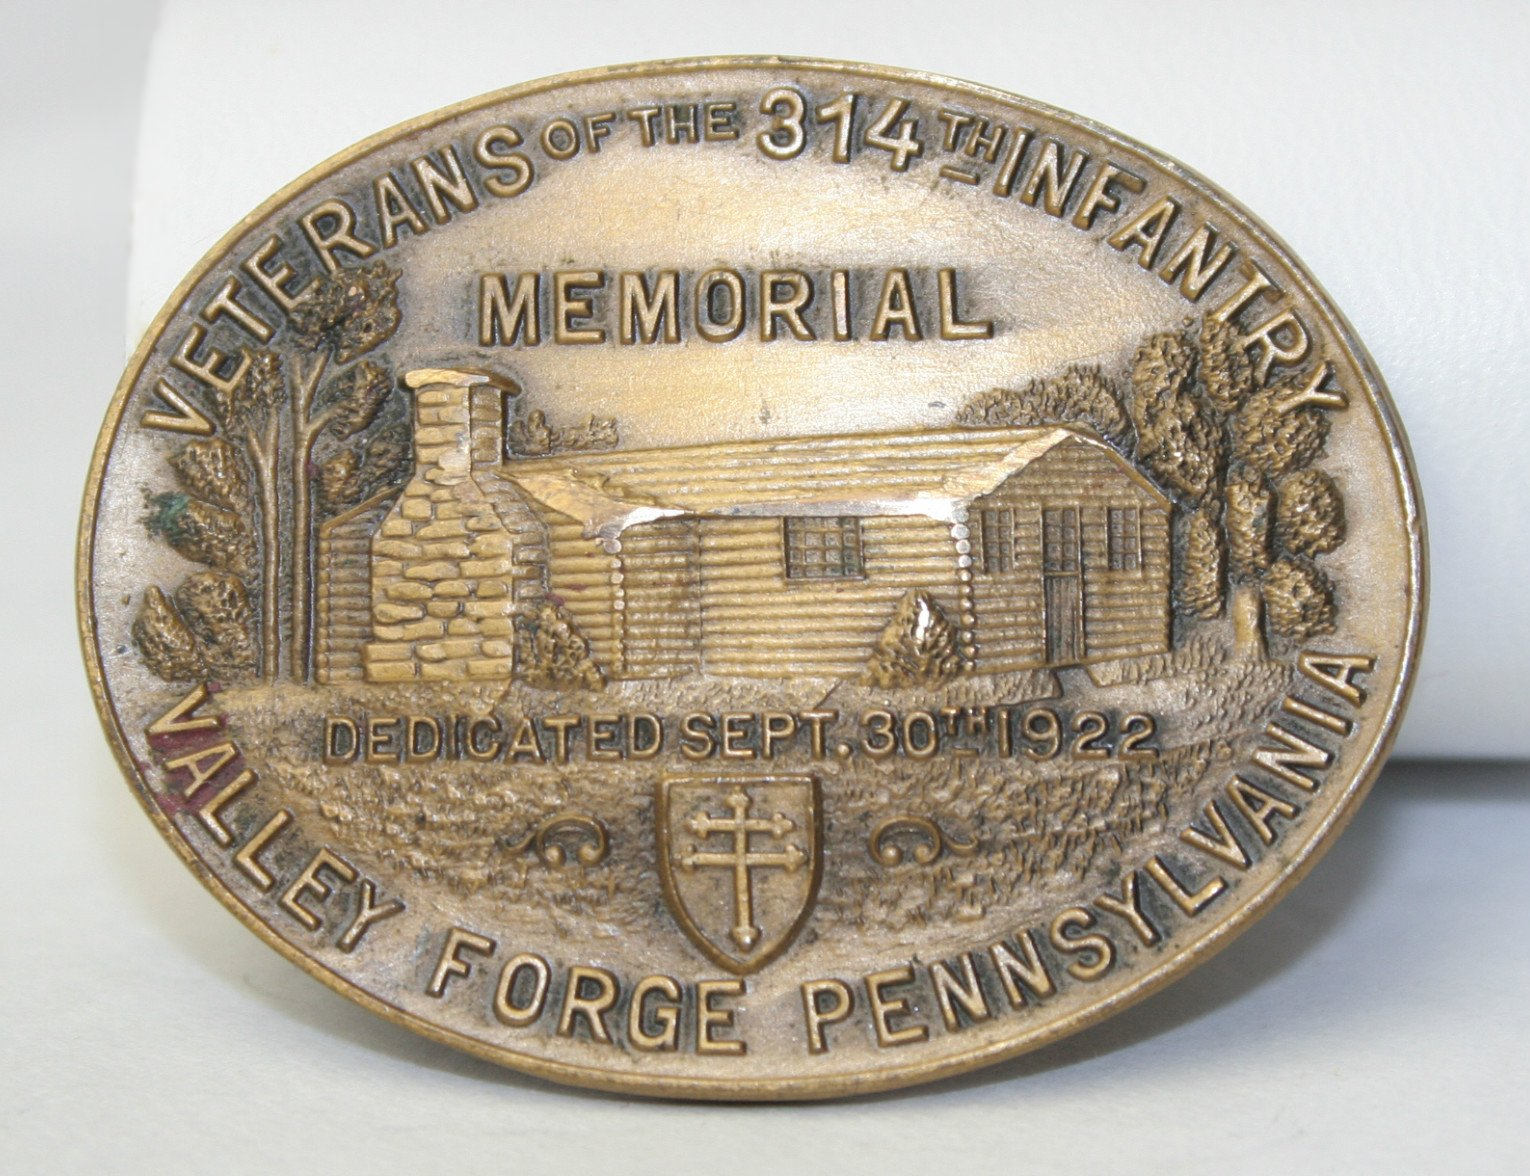 Log Cabin Memorial - Veterans 314th Infantry Regiment A.E.F. - Bronze Medal Coin